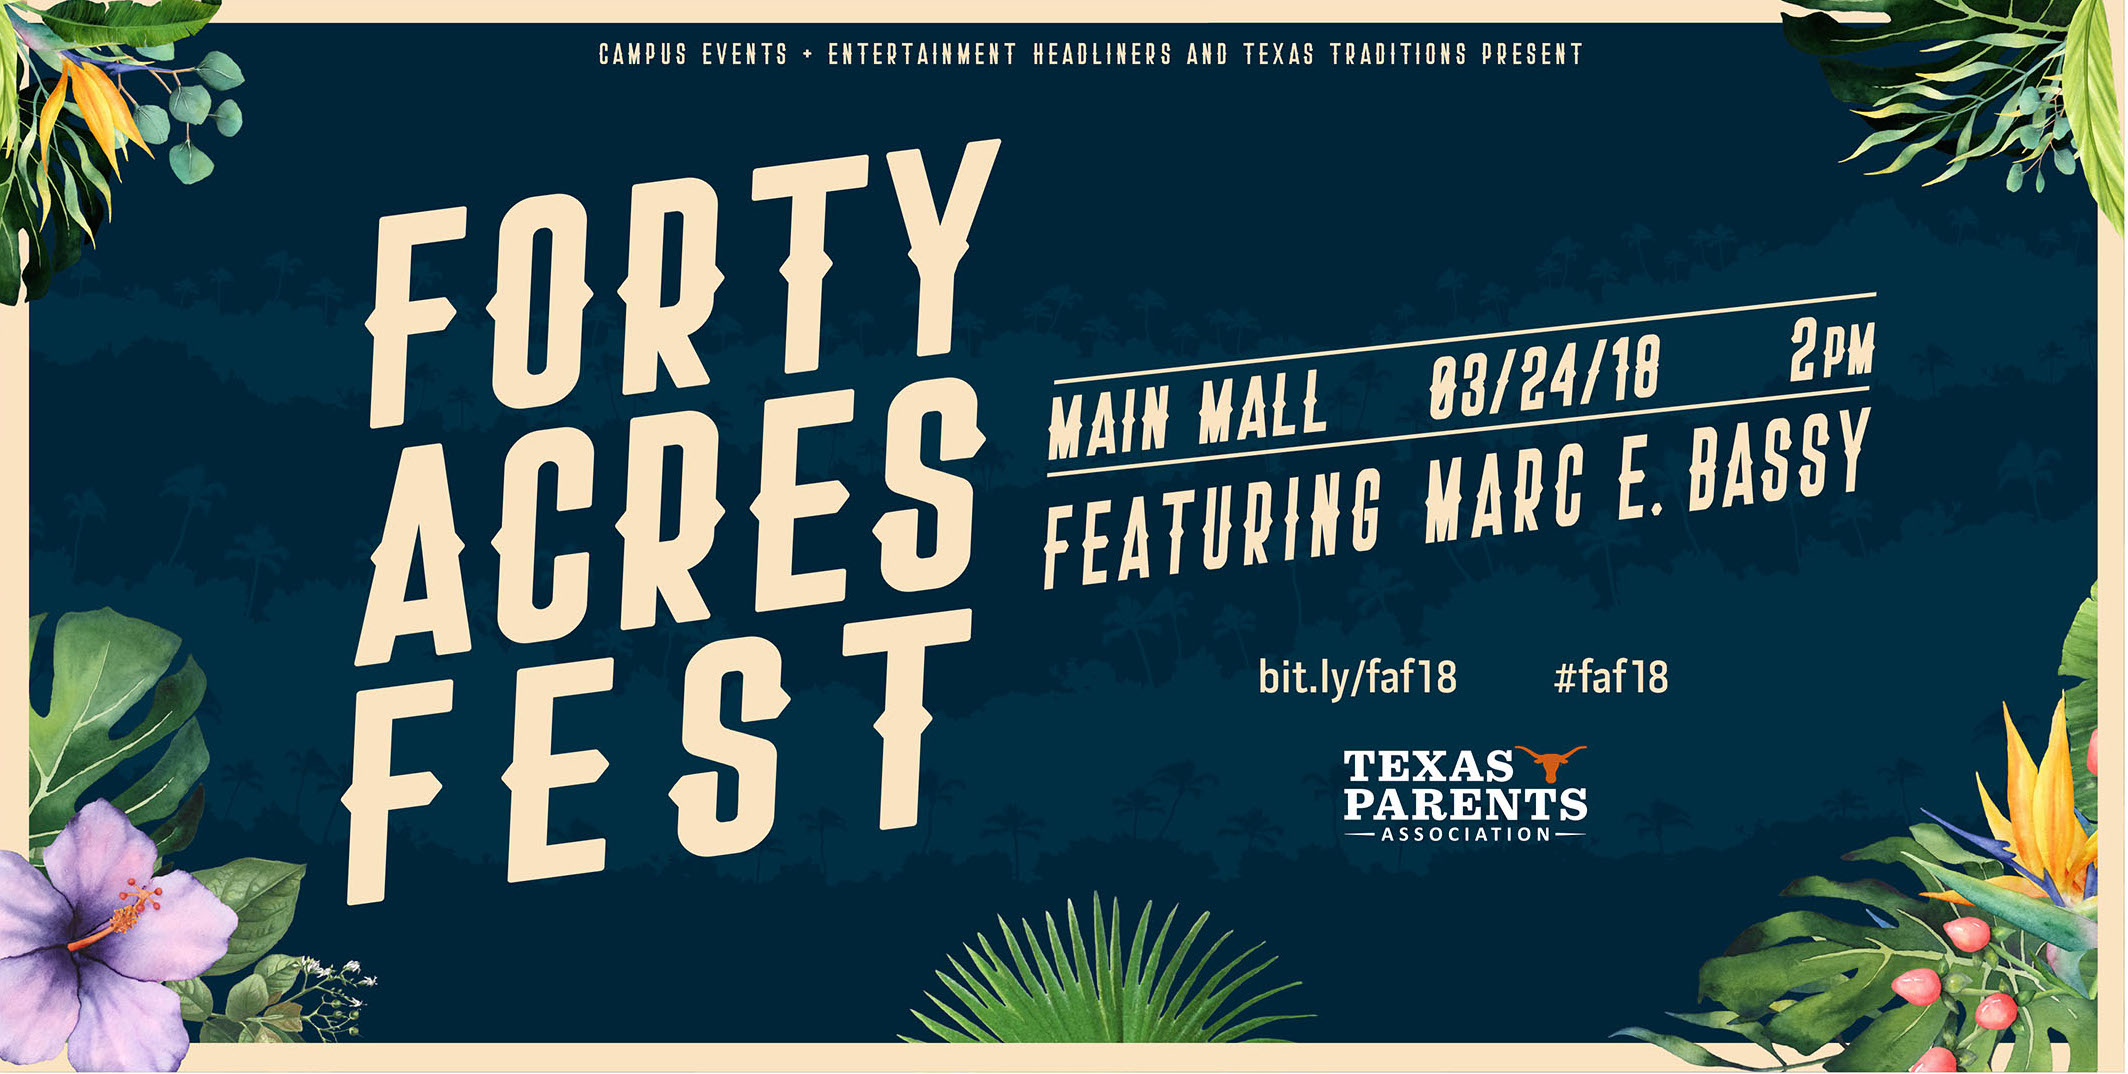 Forty Acres Fest advertisement with jungle theme